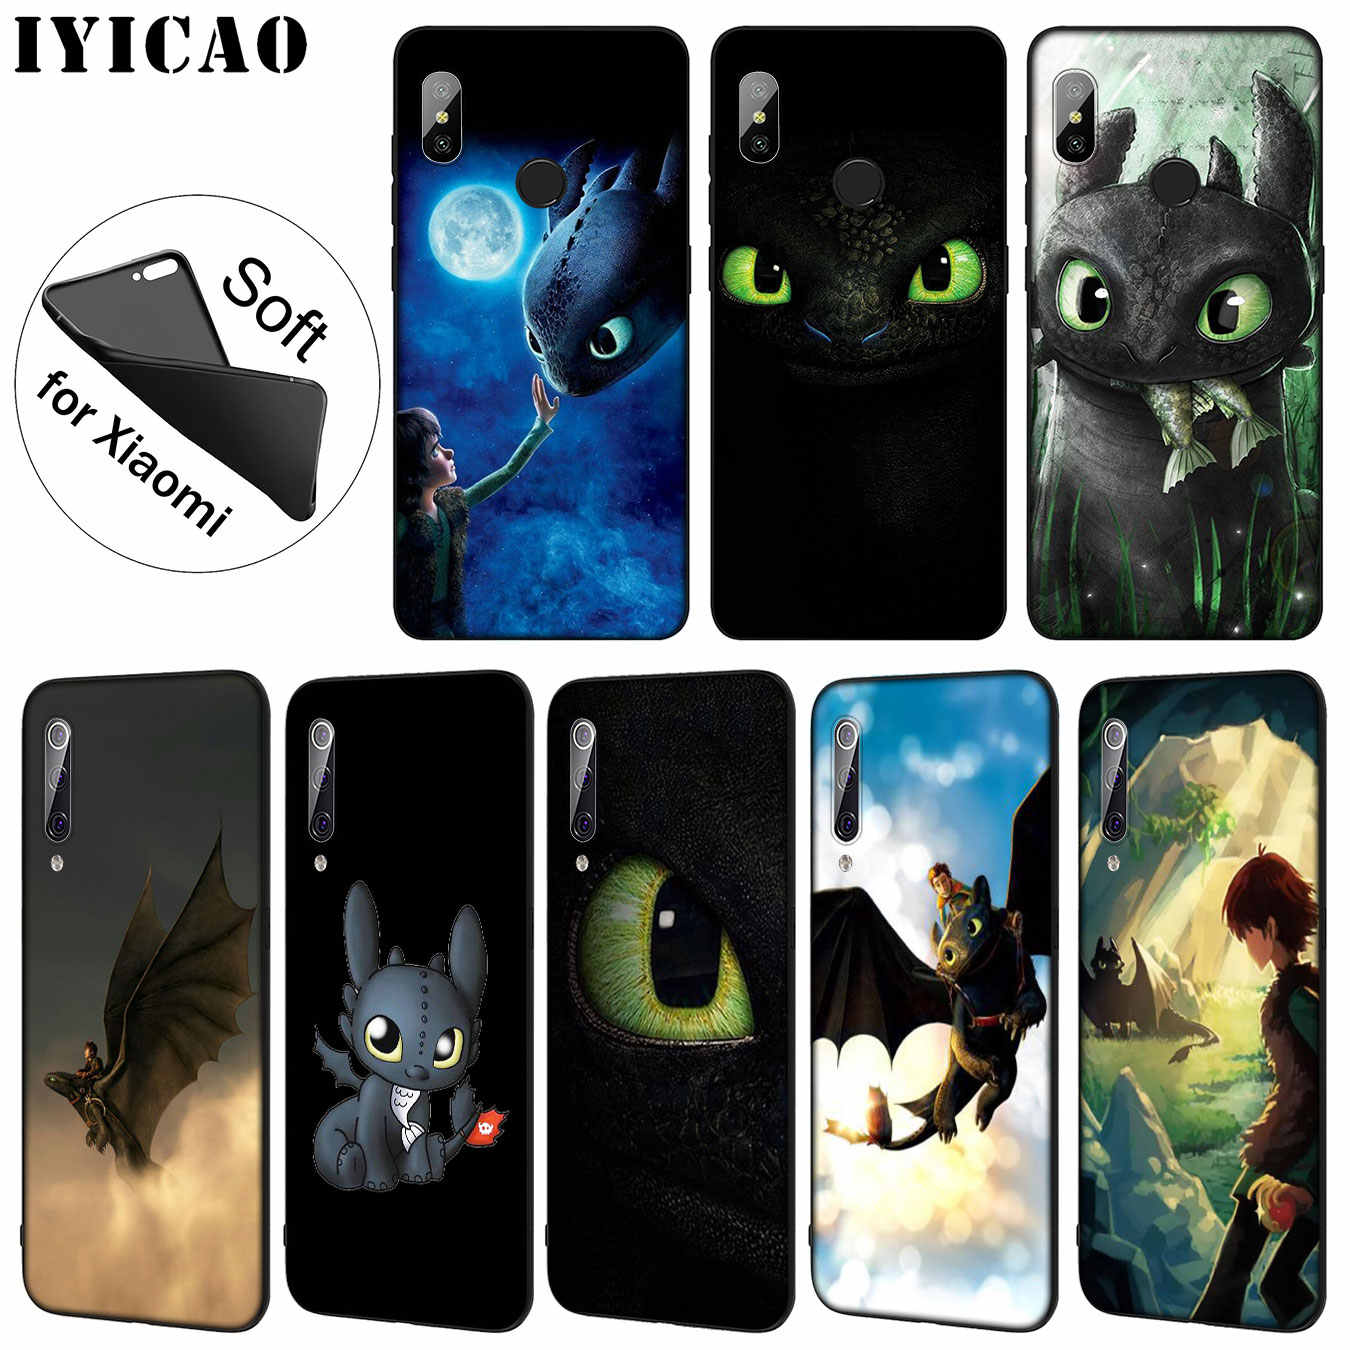 How To Train Your Dragon desdentado IYICAO Soft Case Telefone para Xiao mi mi 9 SE 9T CC9 CC9E 8 A3 Pro A1 A2 Lite pocophone f1 MAX 3